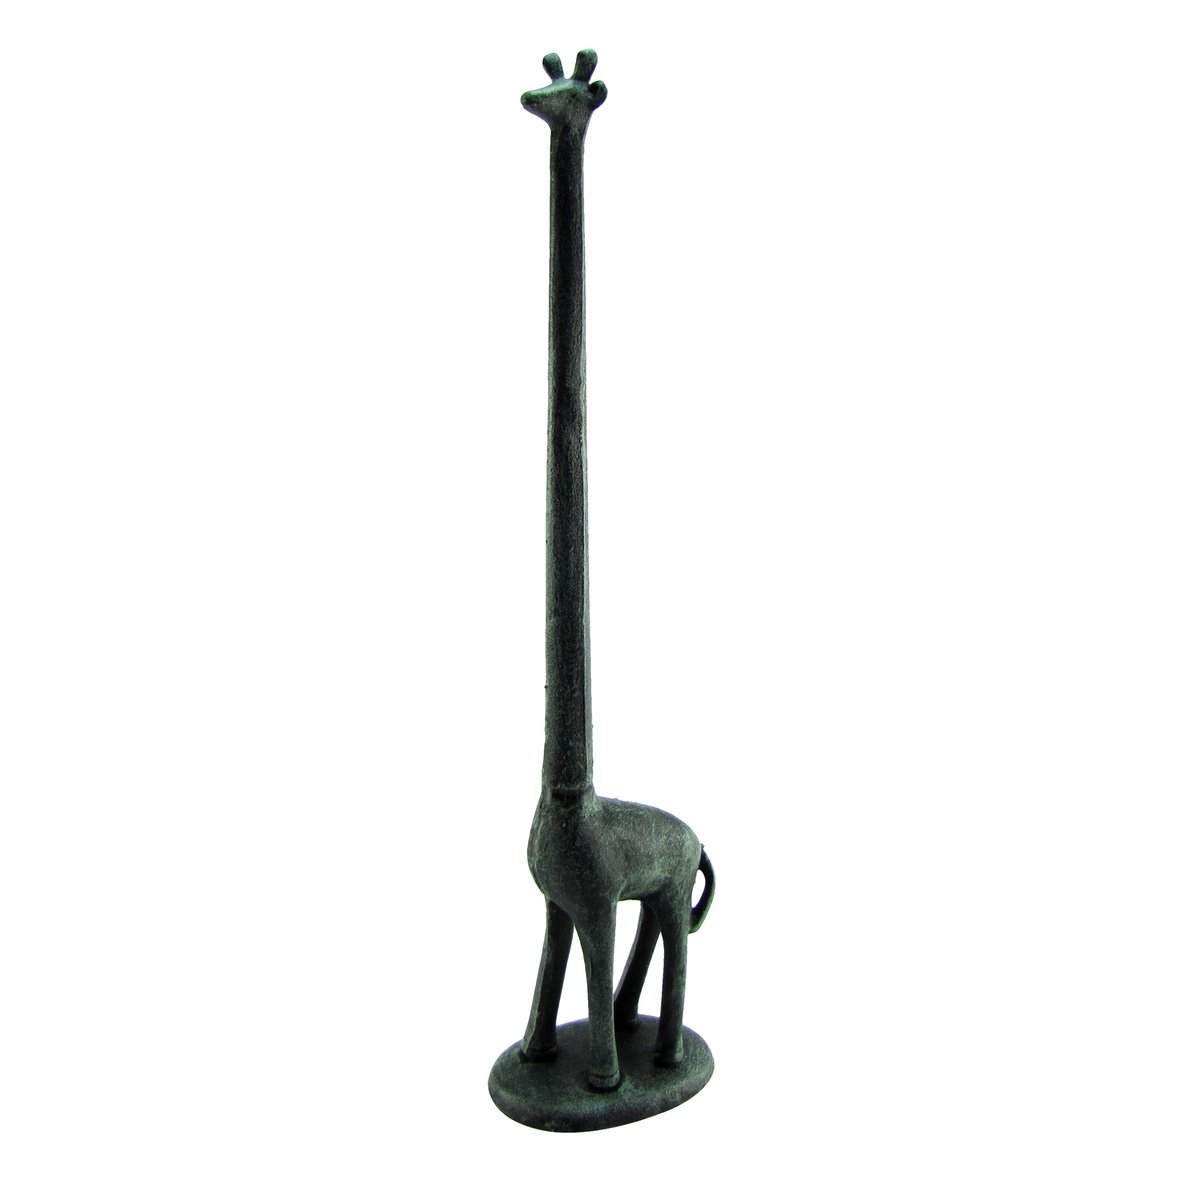 Metal Giraffe Bathroom Toilet Tissue Roll or Kitchen Paper Towel Holder Home Decor